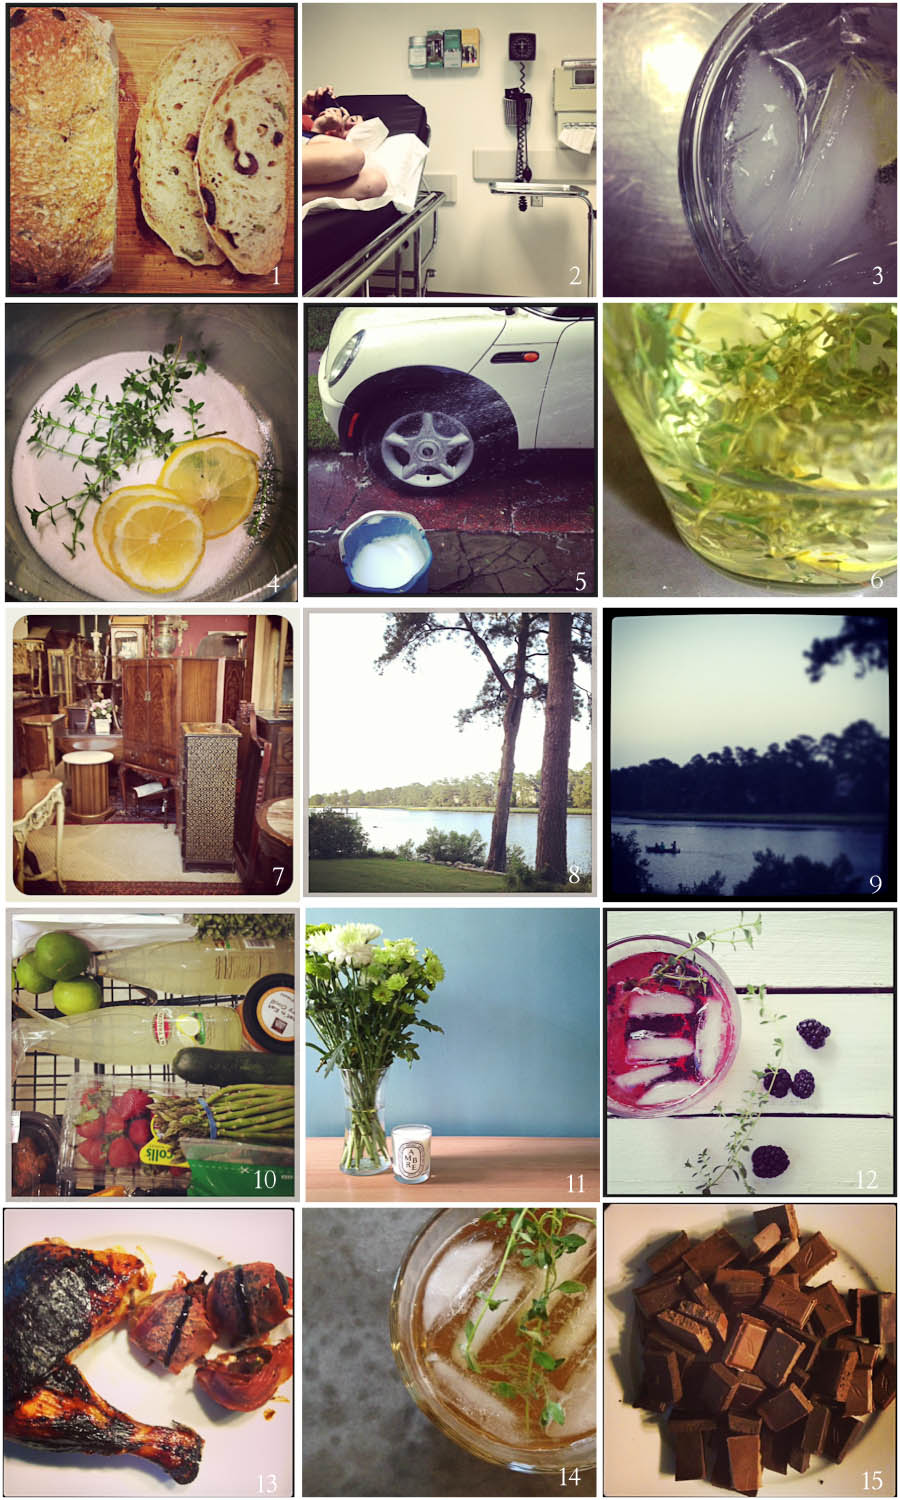 1. Best Bread Ever | 2. Urgent Care (again) | 3. Medicinal | 4. Start of Simple Syrup | 5. Bath | 6. Simple Syrup | 7. Coffee Table Hunt | 8. Party House | 9. Evening Boat | 10. Grocery Cart | 11. Diptyque | 12. New Cocktail | 13. Sunday Dinner | 14.  Pimms | 15. Simple Dessert